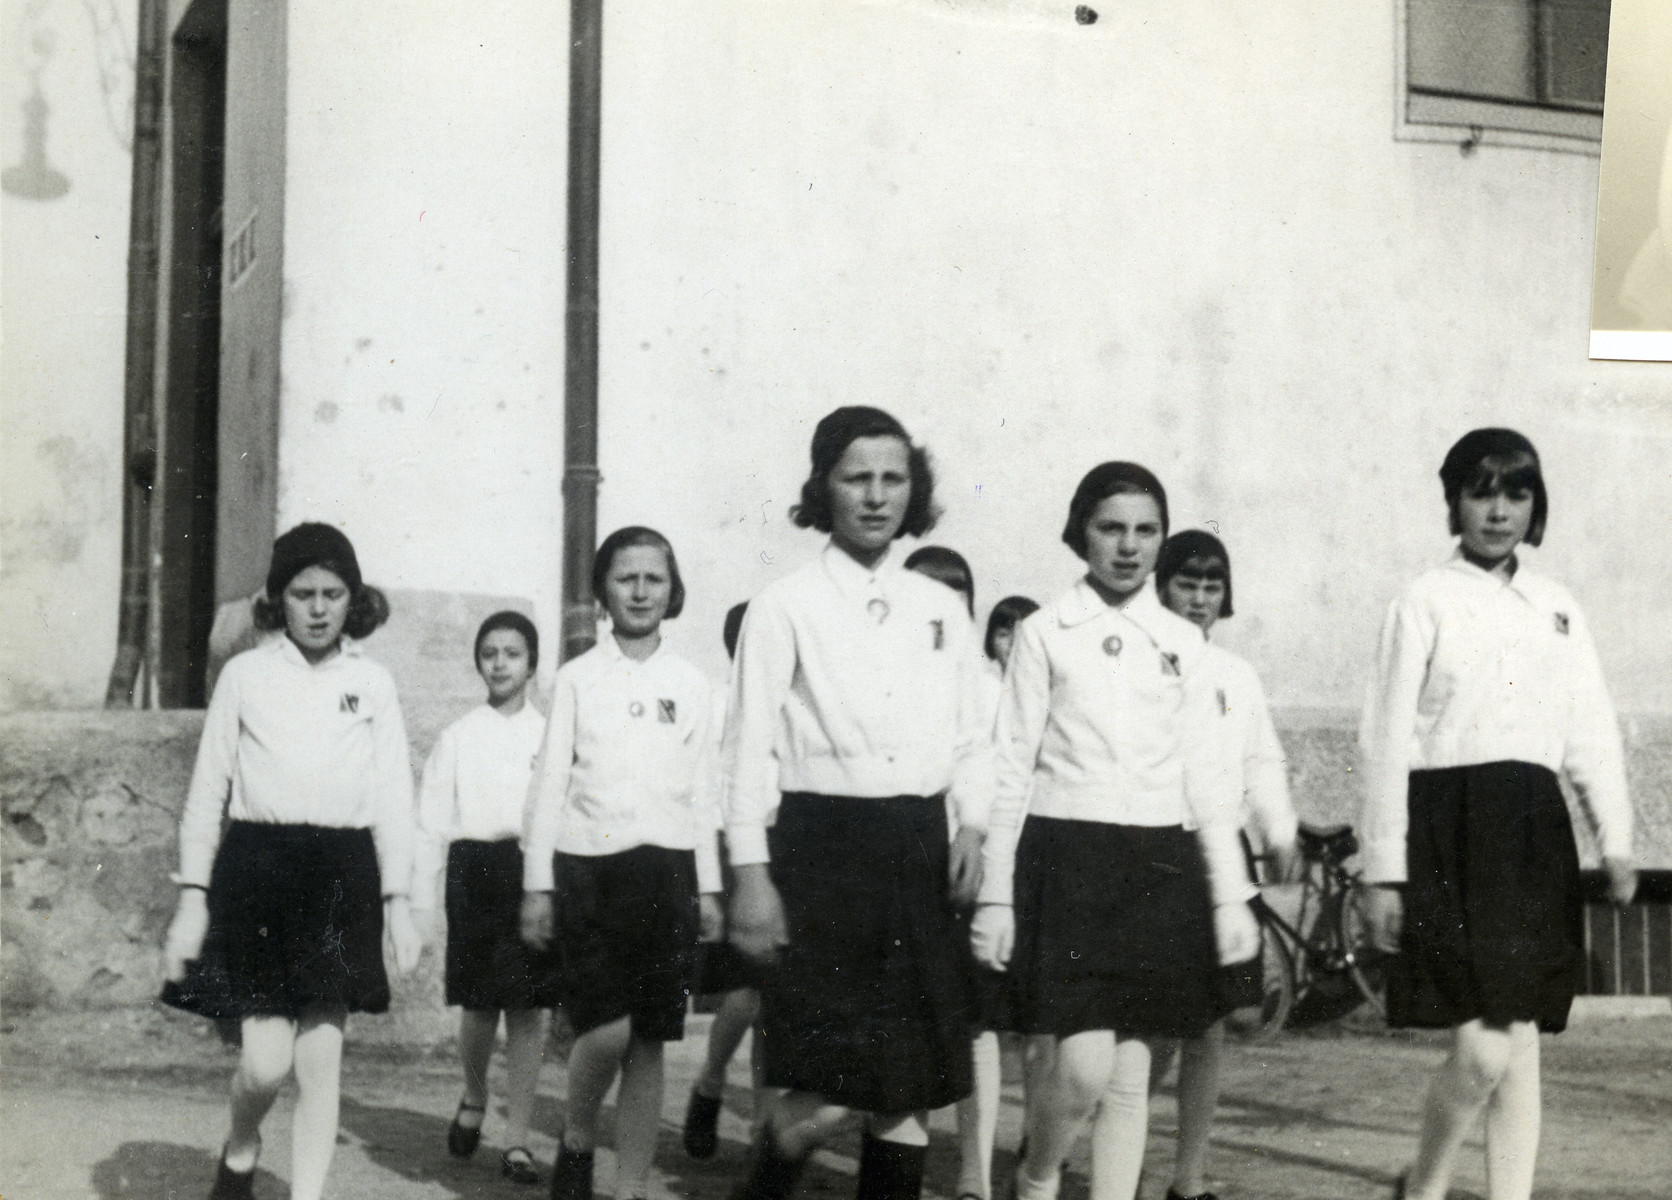 Group portrait of young girls belonging to the Fascist youth movement Picolo Italiana rallying for Mussolini.   Among those pictured is Anna Kohn. Membership in the organization was obligatory at that time, even for Jews.